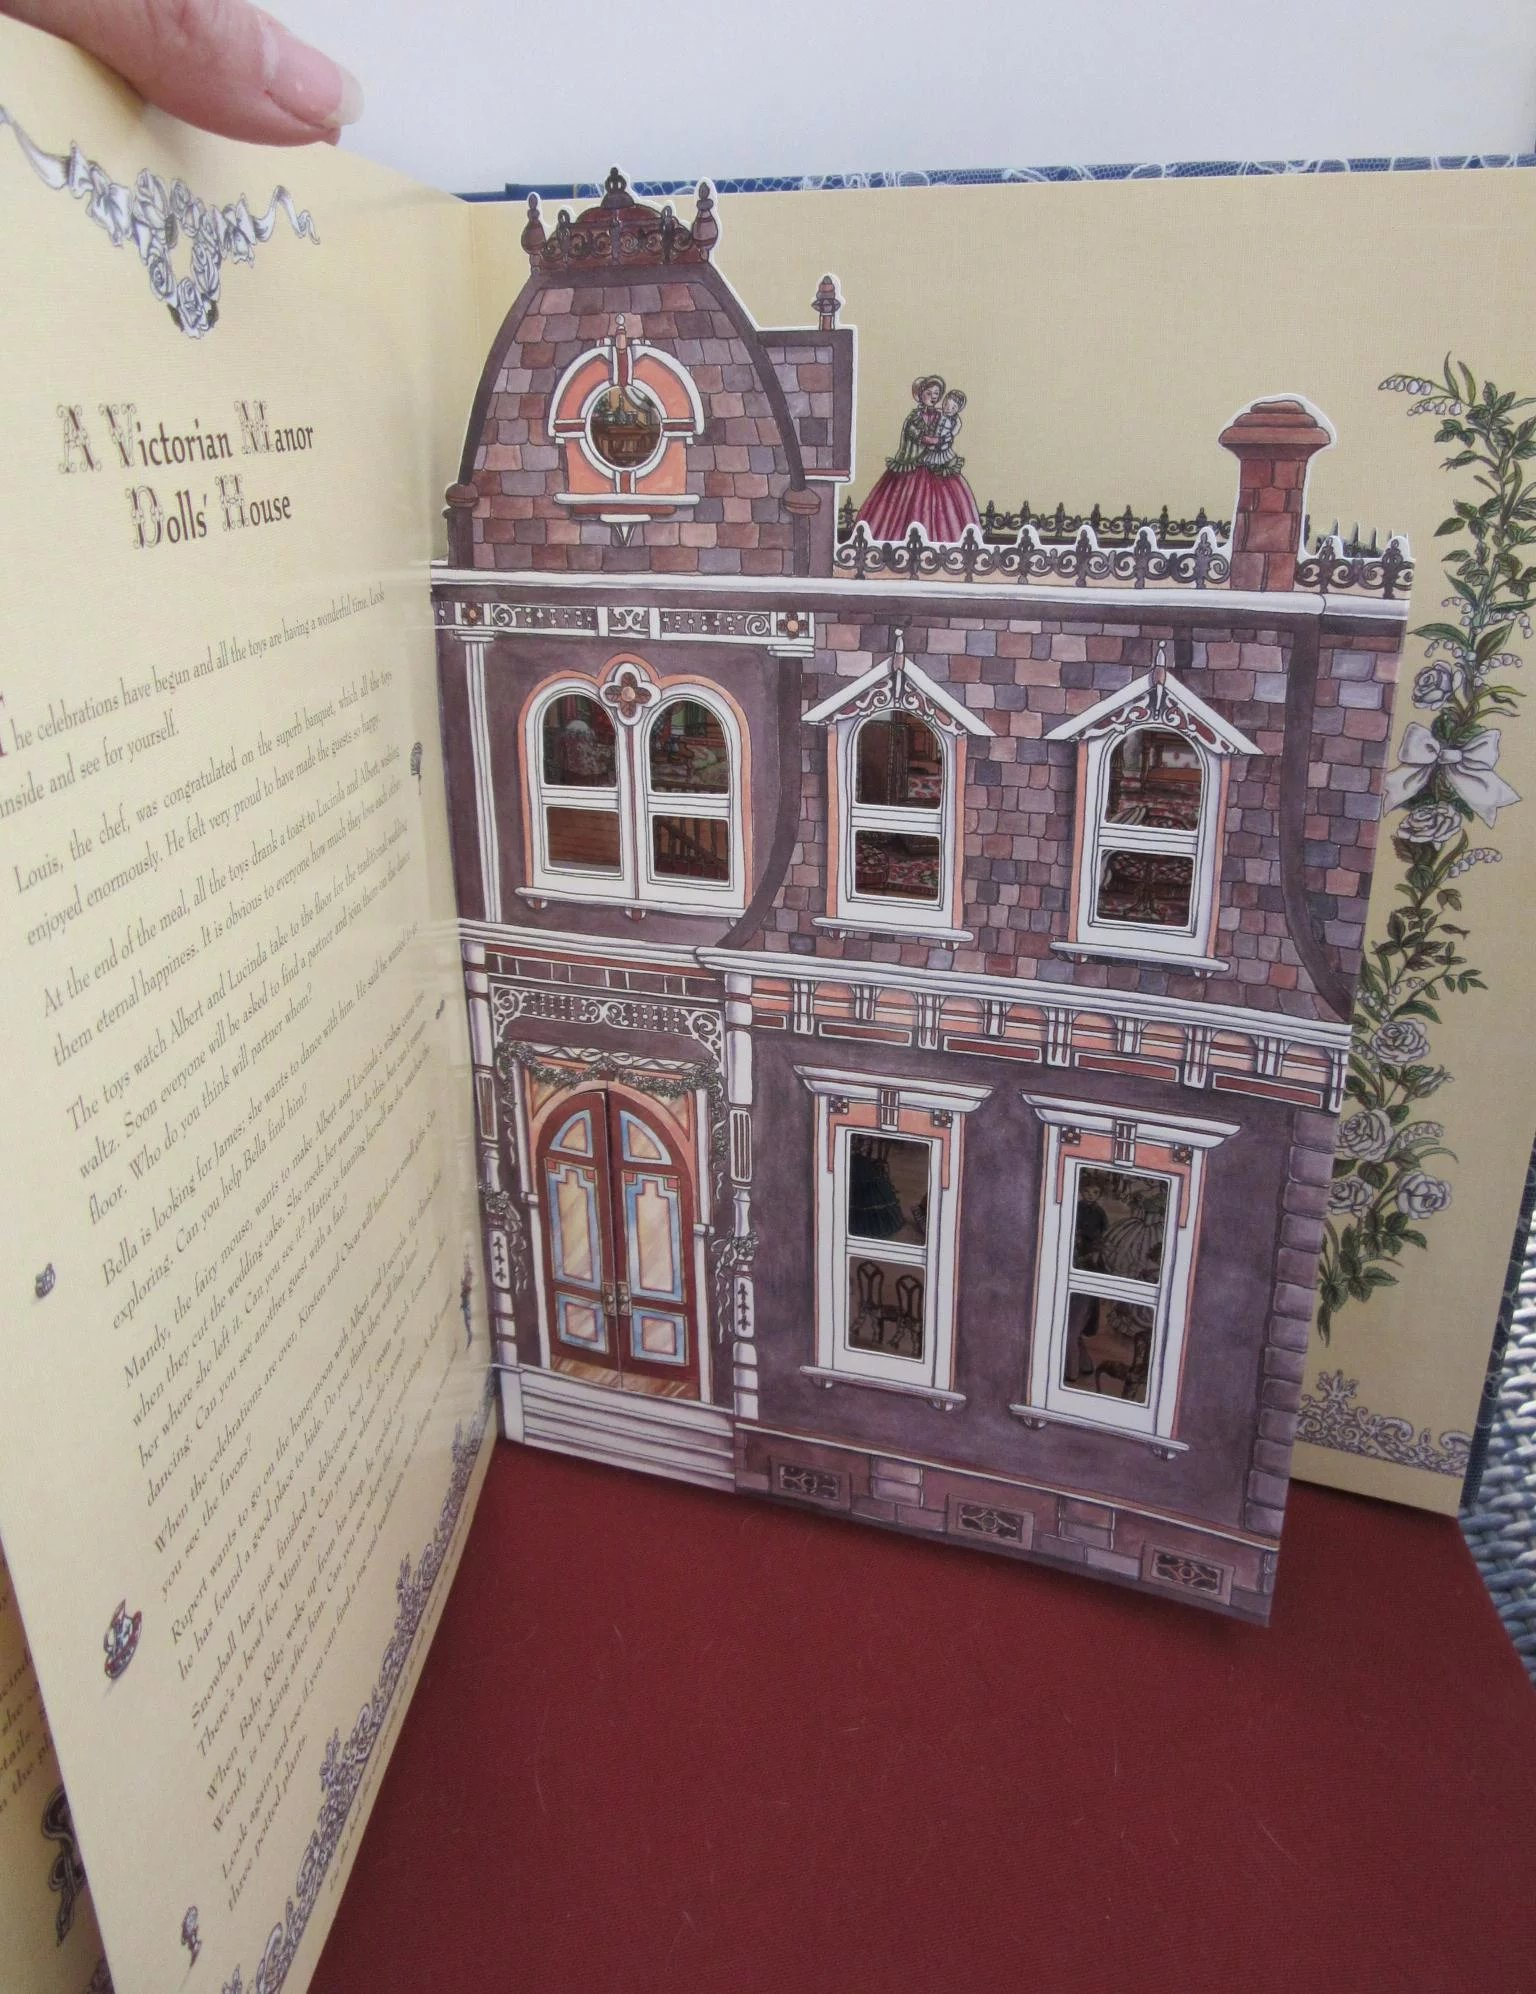 Popup book enchanted dolls house wedding onceagain antique dolls popup book enchanted dolls house wedding click to expand solutioingenieria Choice Image